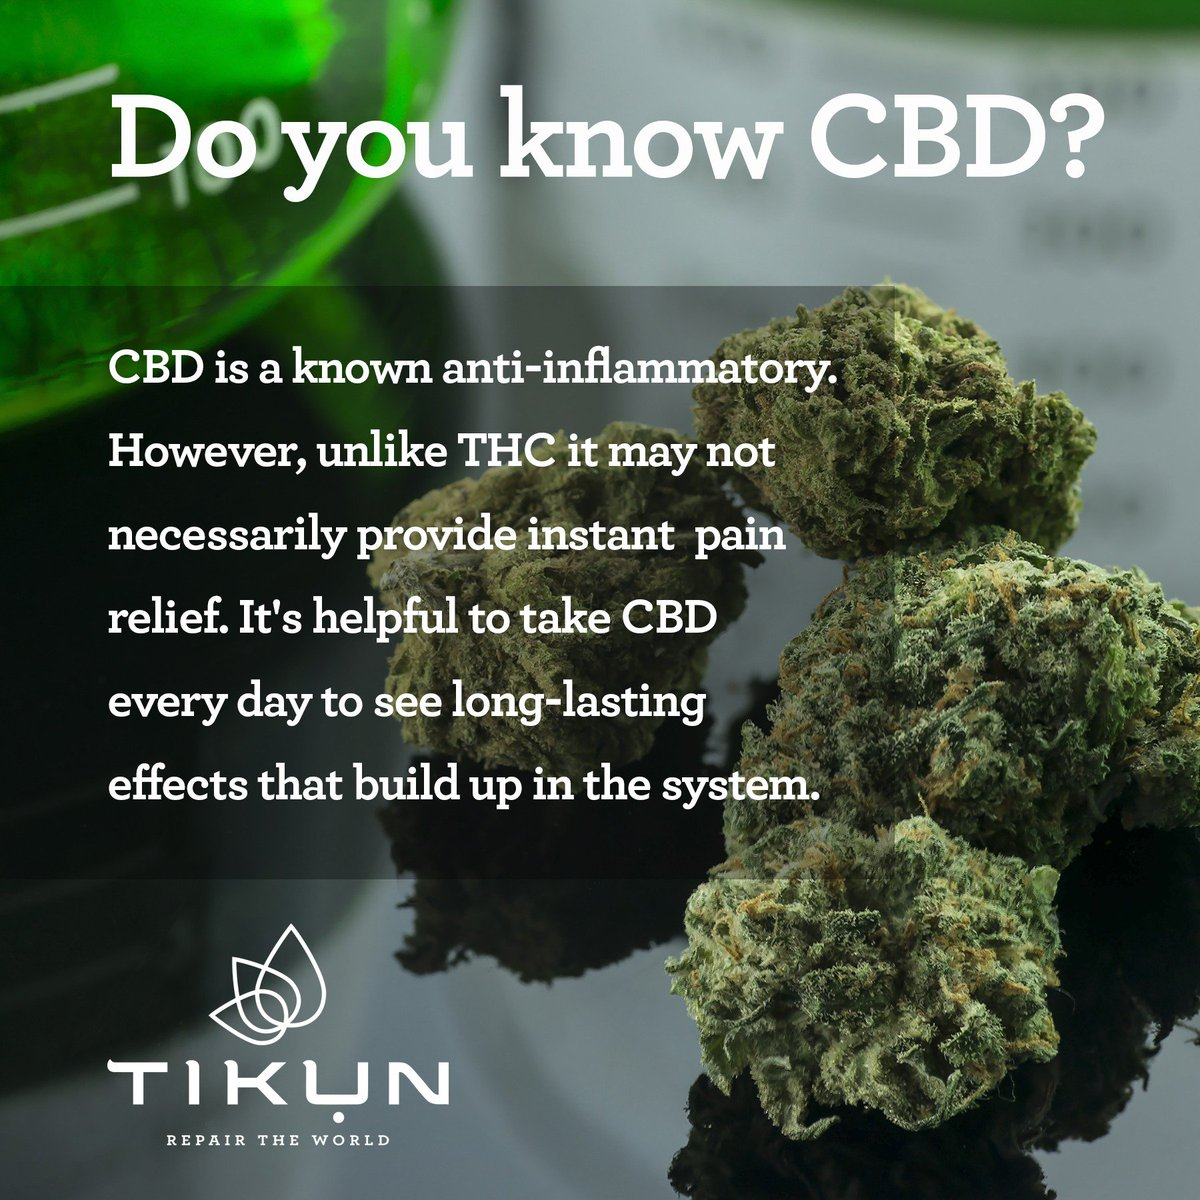 3d71b03ea7a #TreatmentTip: Use #CBD every day for 2 weeks in order to experience it  fully, rather than a one-off dose #medicalmarijuana #legalizeit  #420pic.twitter.com/ ...